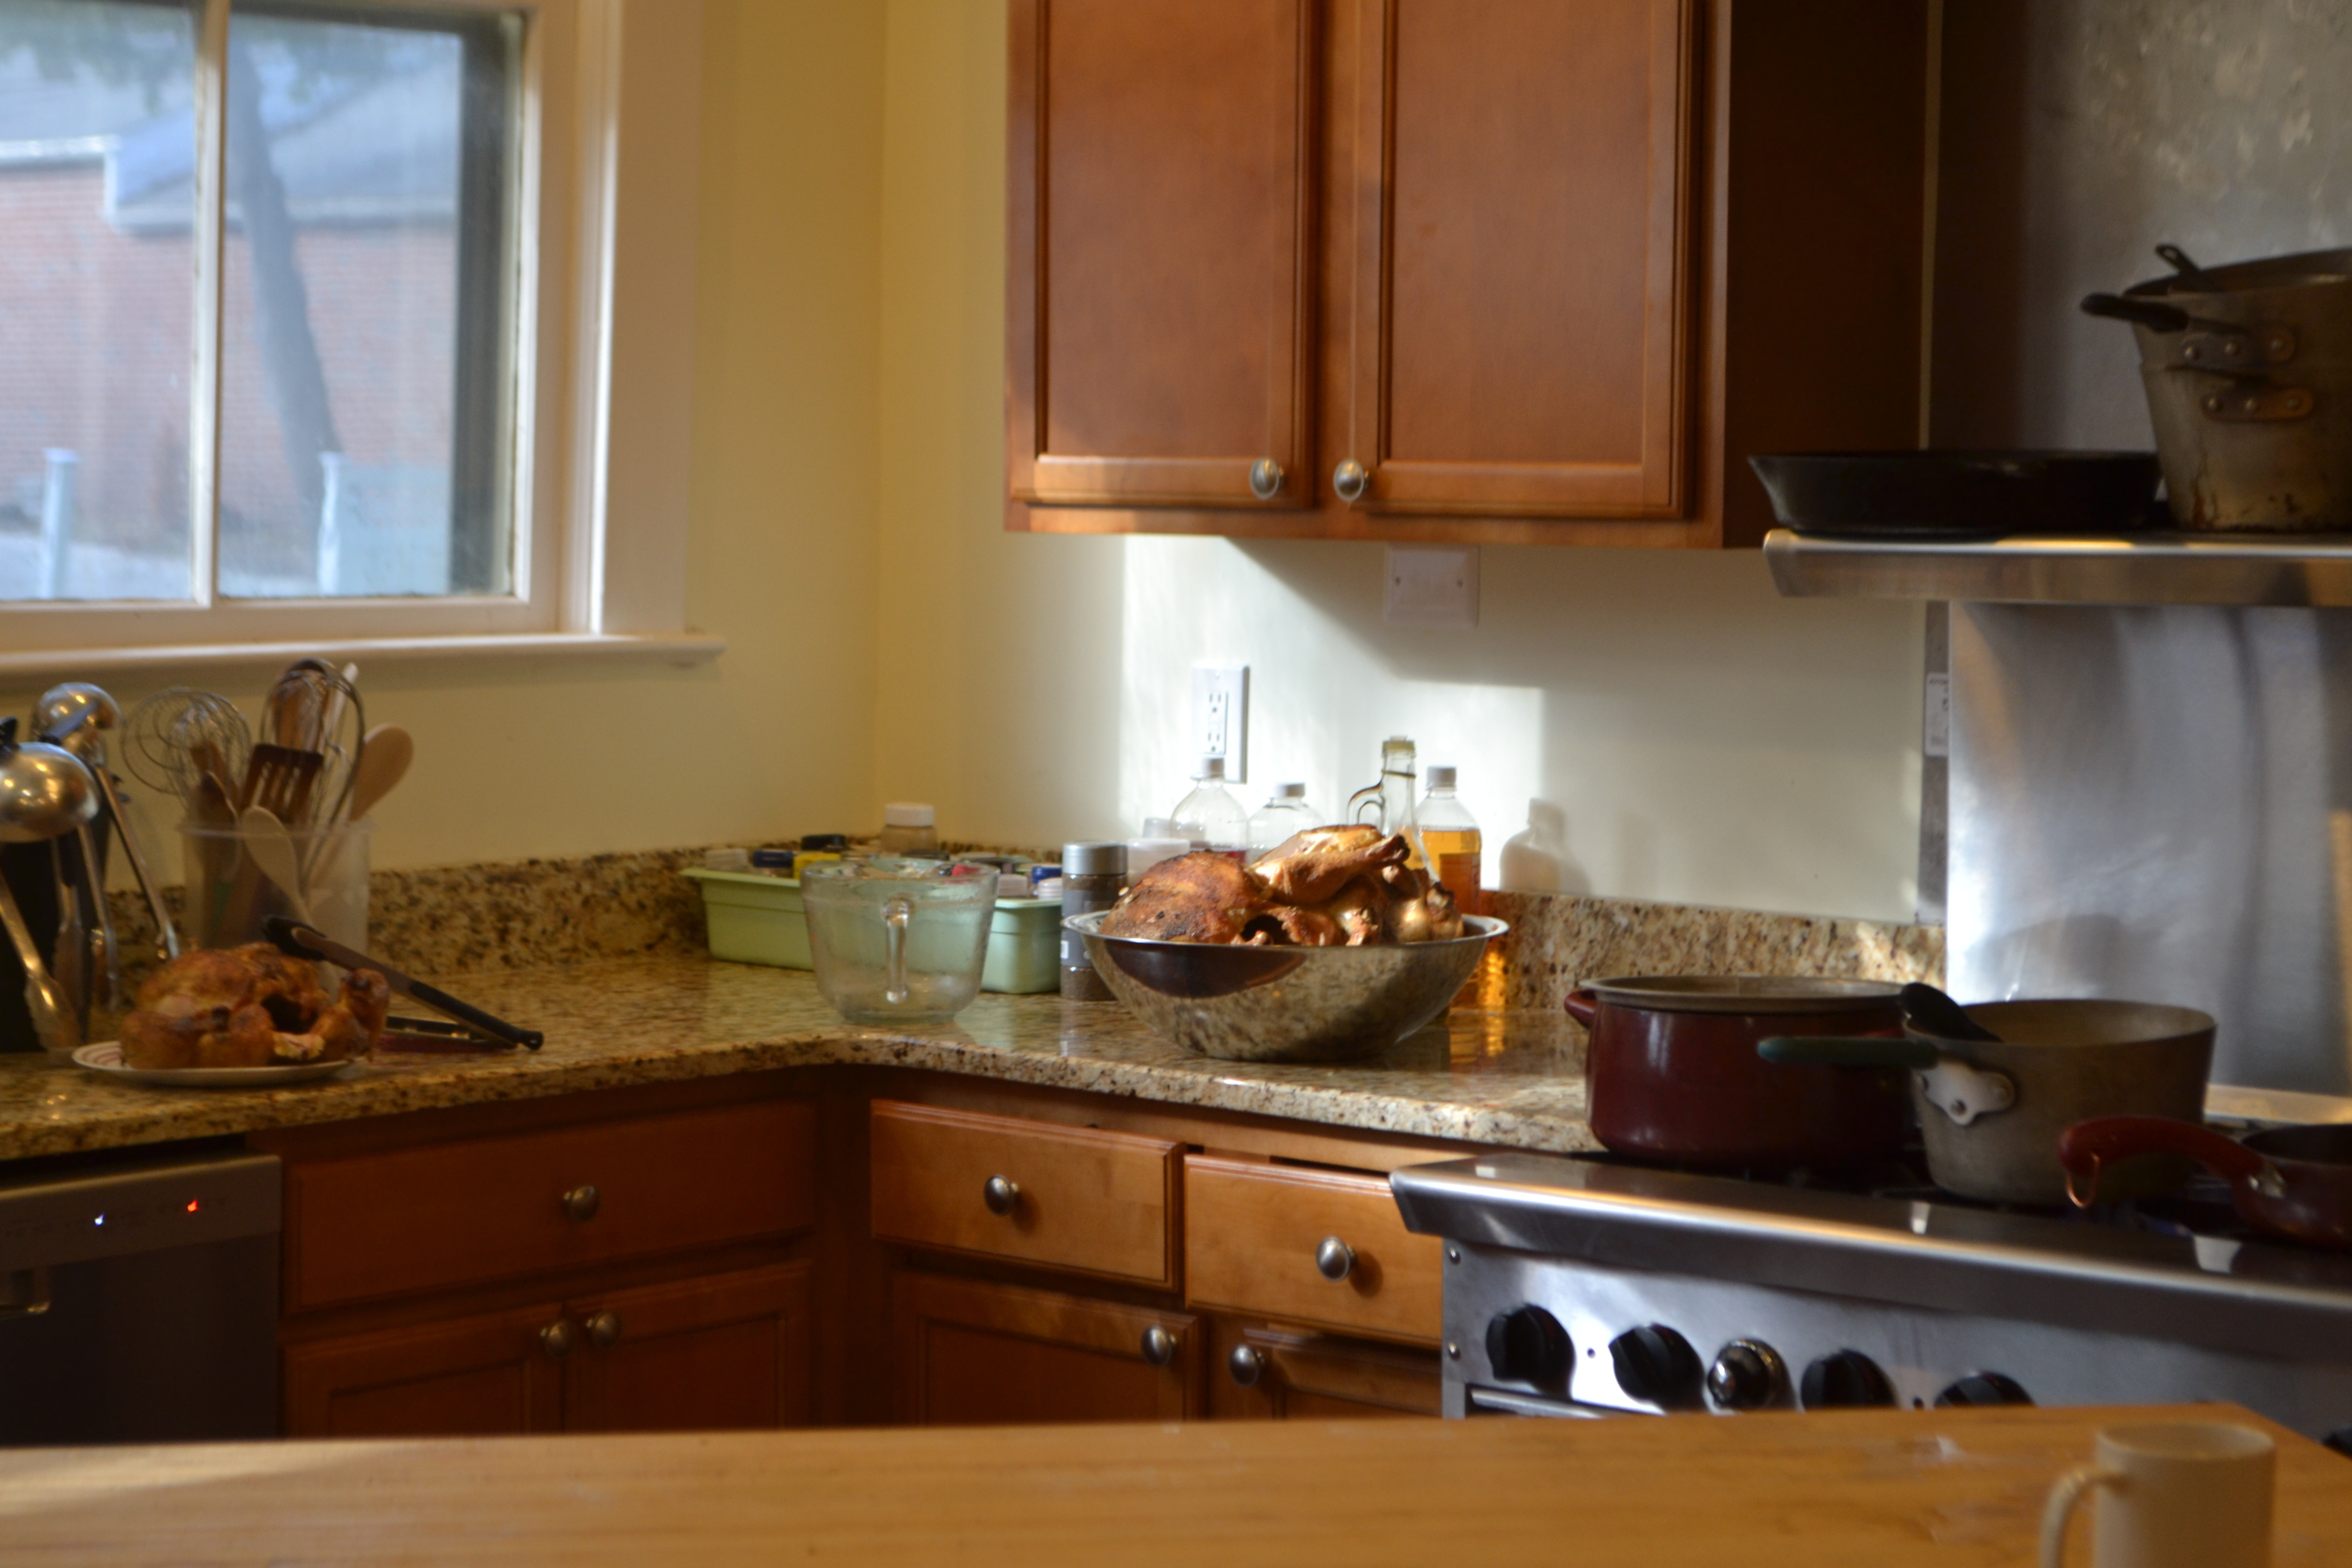 donate kitchen cabinets how to donate kitchen cabinets hunker donate kitchen cabinets uk monsterlune